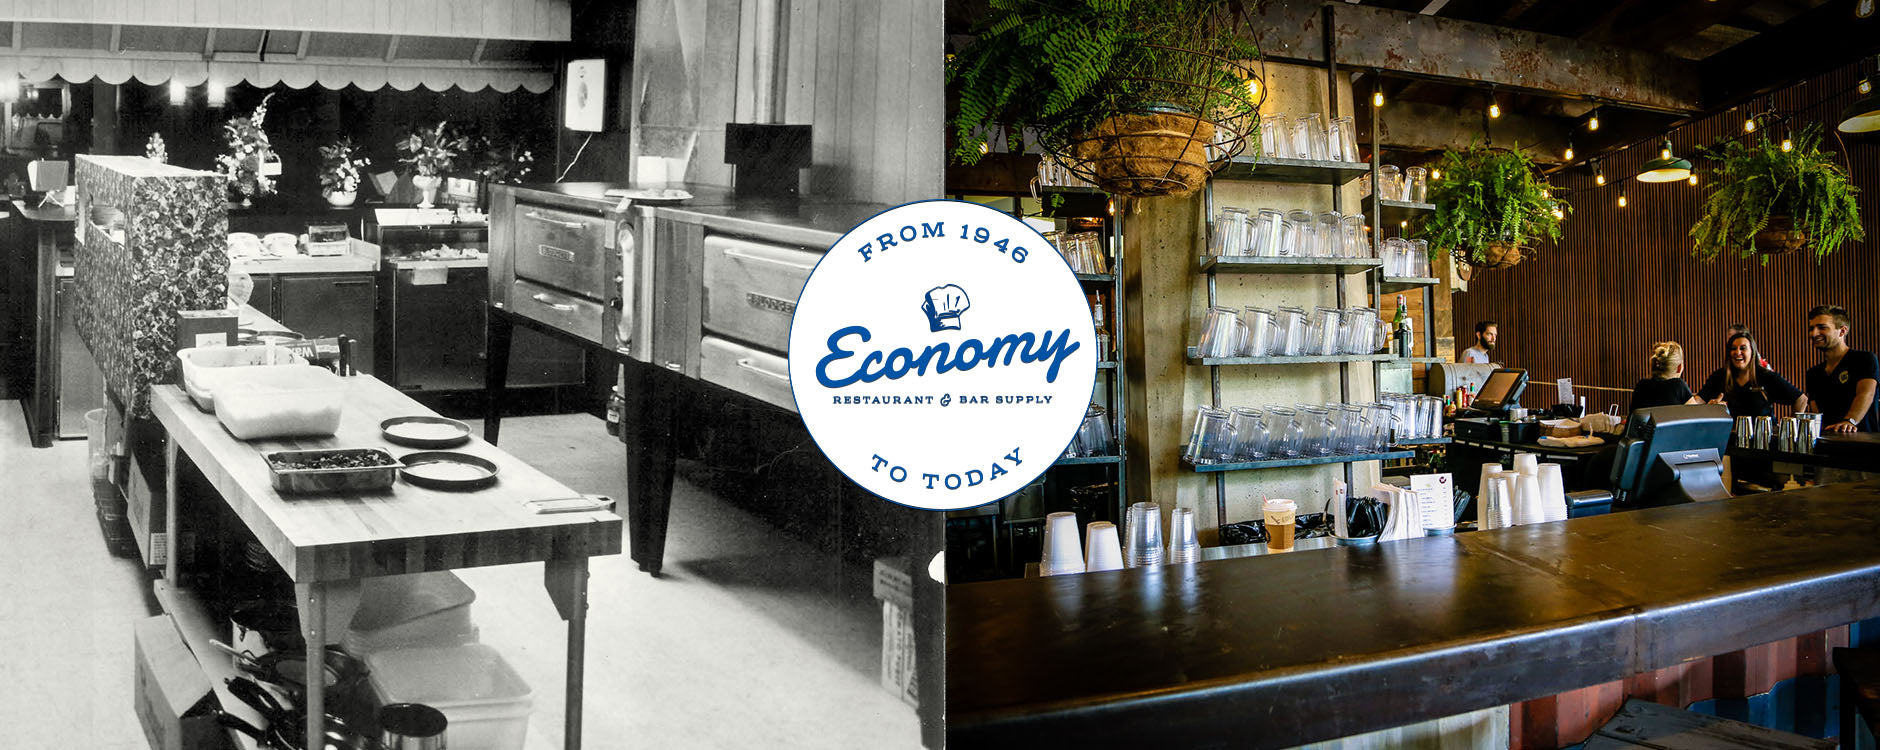 Since 1946 Economy has transformed and supported establishments with quality restaurant supplies and equipment.